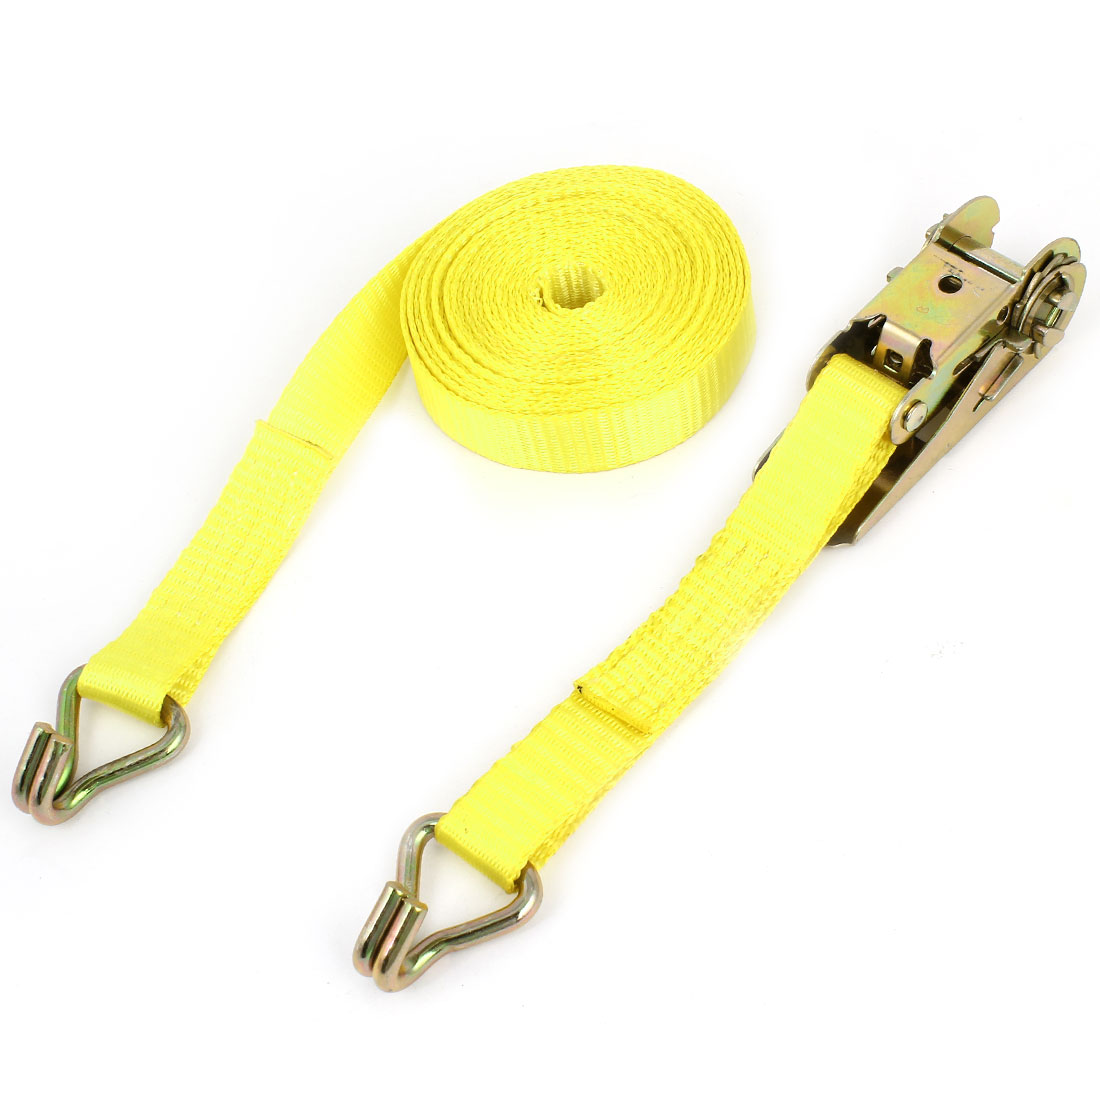 Truck 1500 lbs 2 J Hooks Ratchet Tie Down Strap Rope 4.5m Long 25mm Width